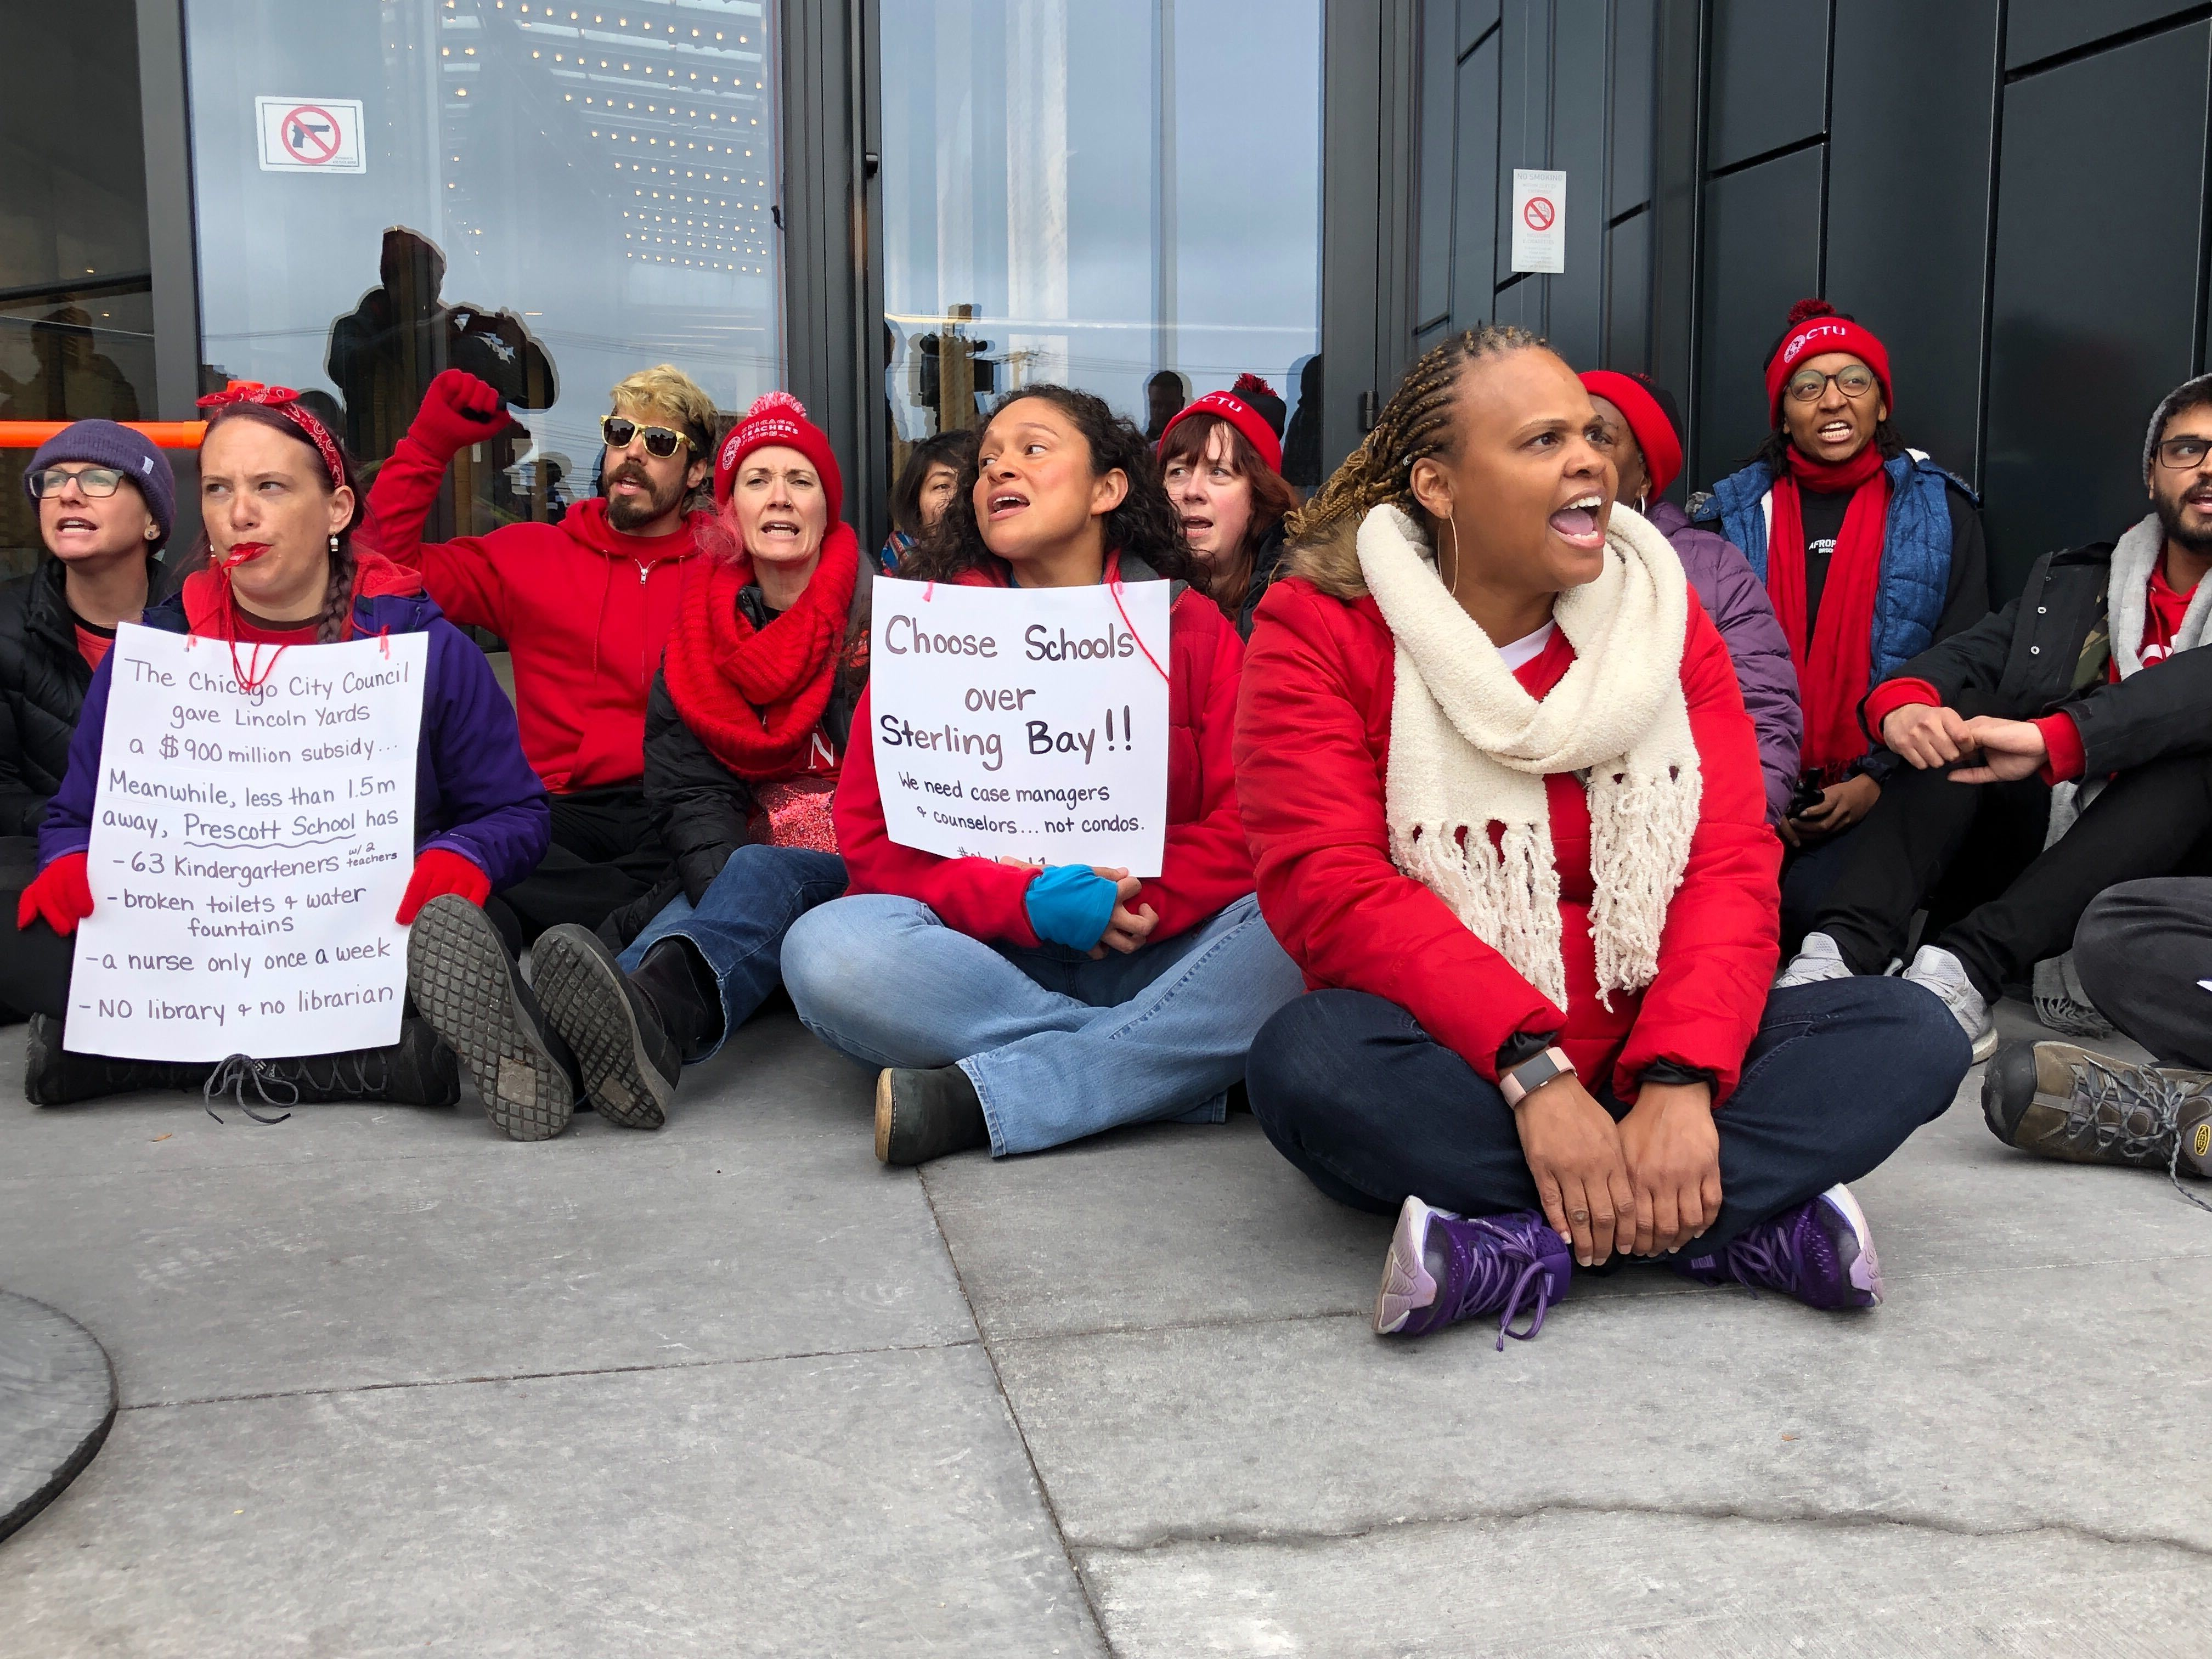 About 40 CTU members protested outside the West Loop headquarters of Lincoln Yards developer Sterling Bay on the ninth day of a citywide teacher strike. The teachers sought to deliver a letter highlighting the use of tax incentives for the development.